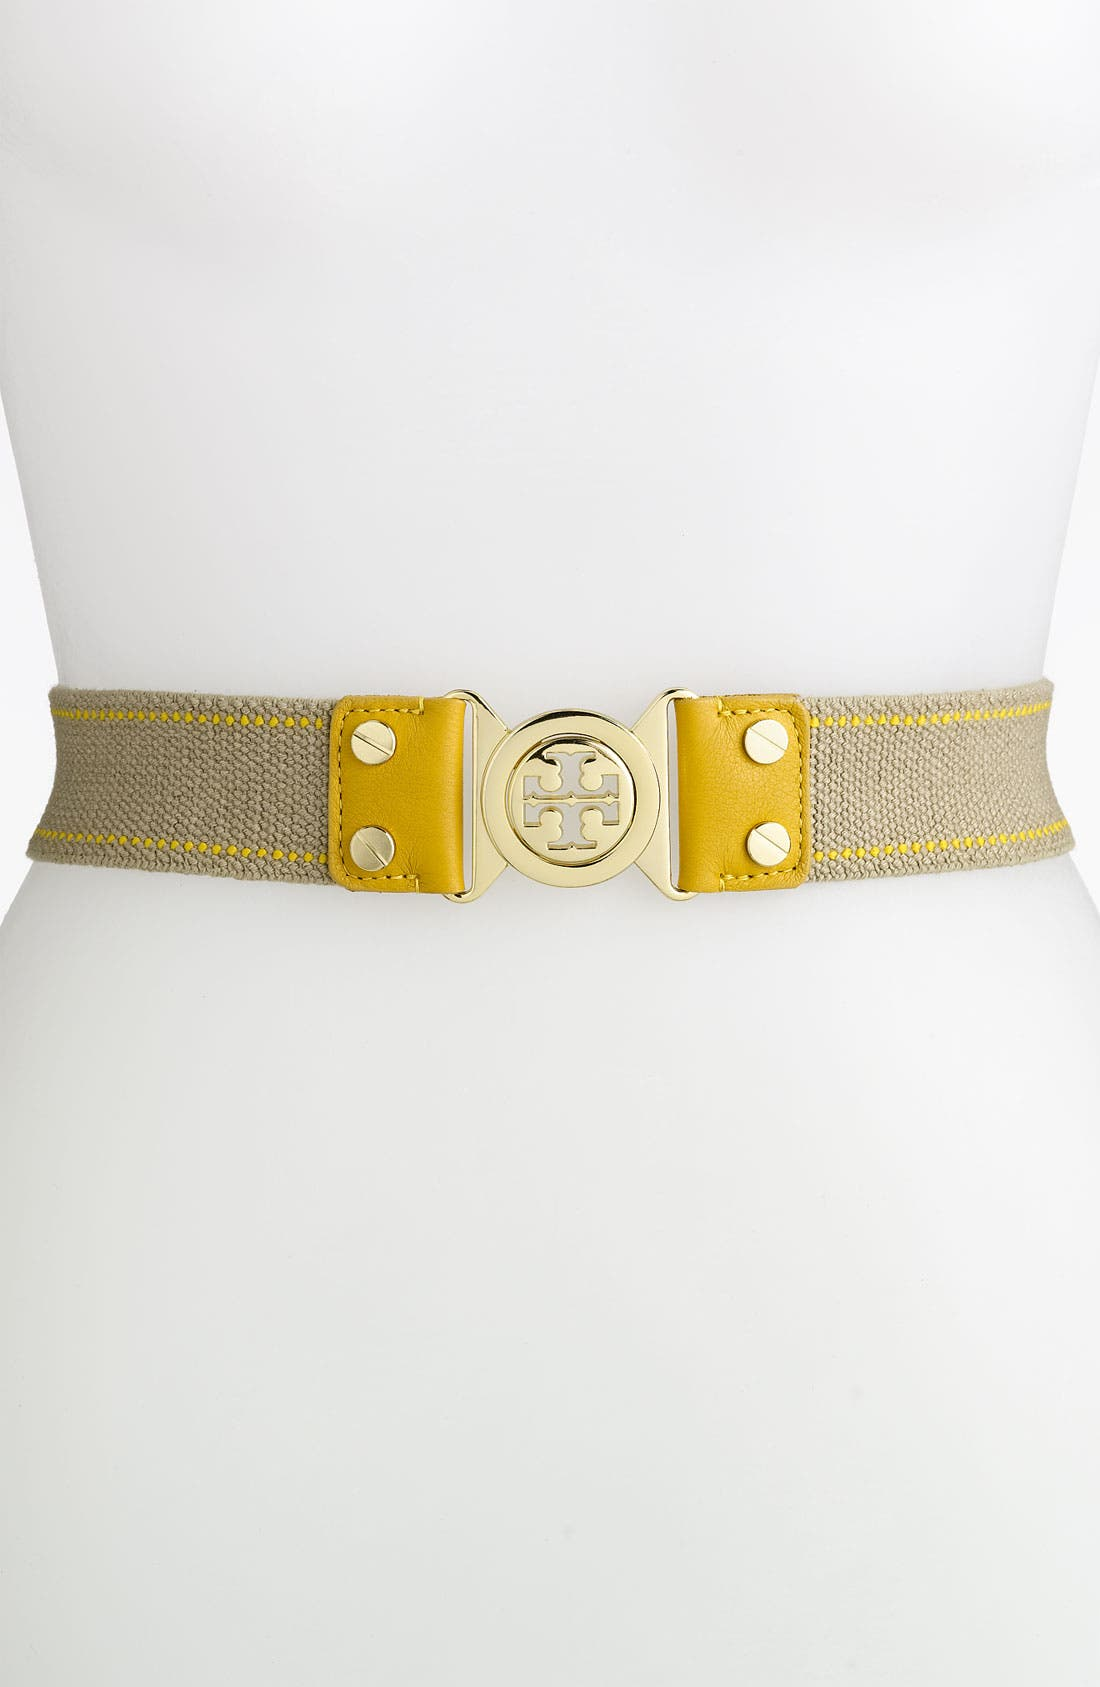 Main Image - Tory Burch 'Stretch Interlocking' Belt